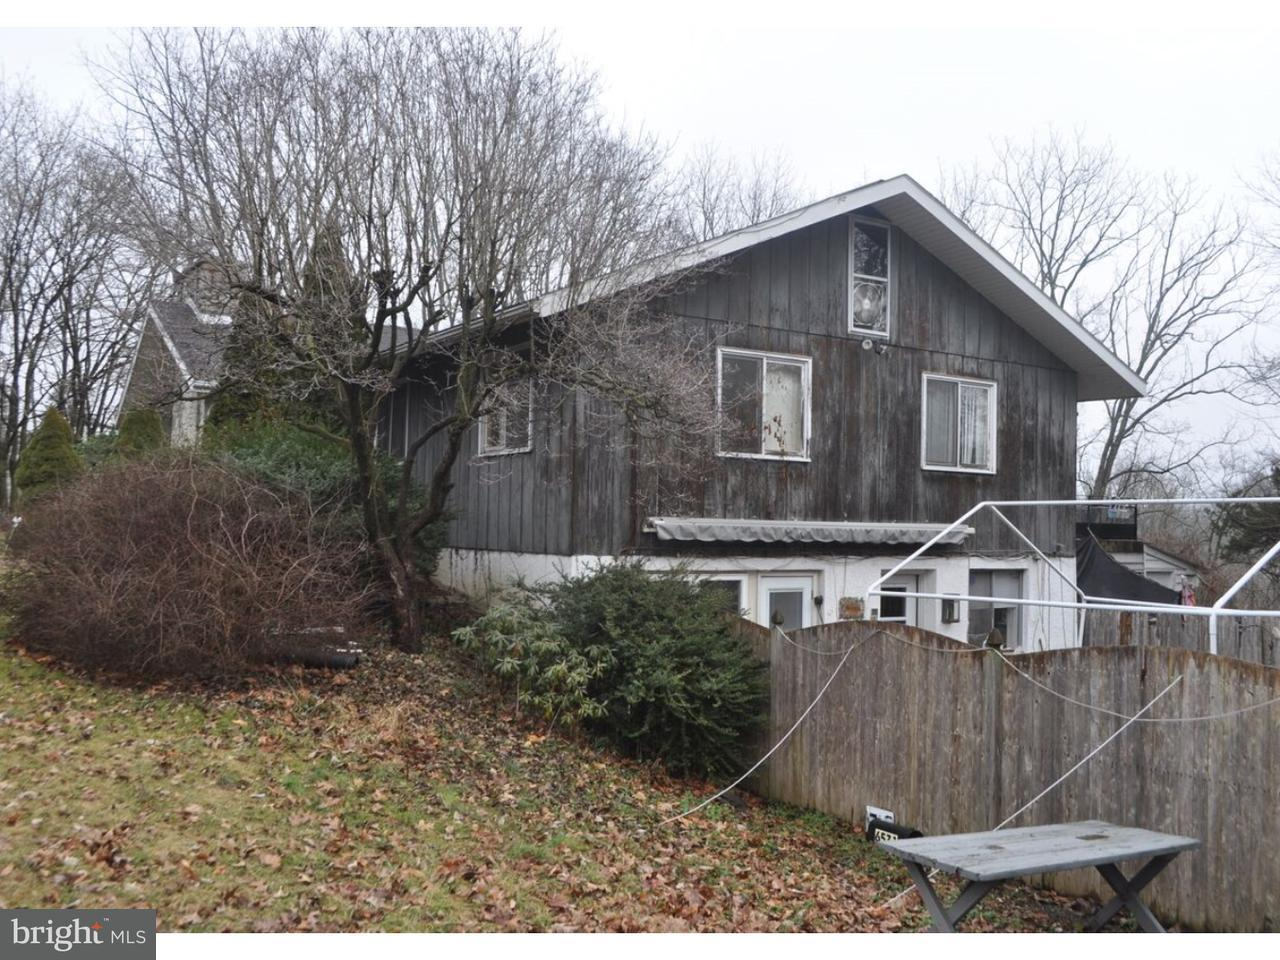 Single Family Home for Sale at 6531 UPPER RIDGE Road Green Lane, Pennsylvania 18054 United States